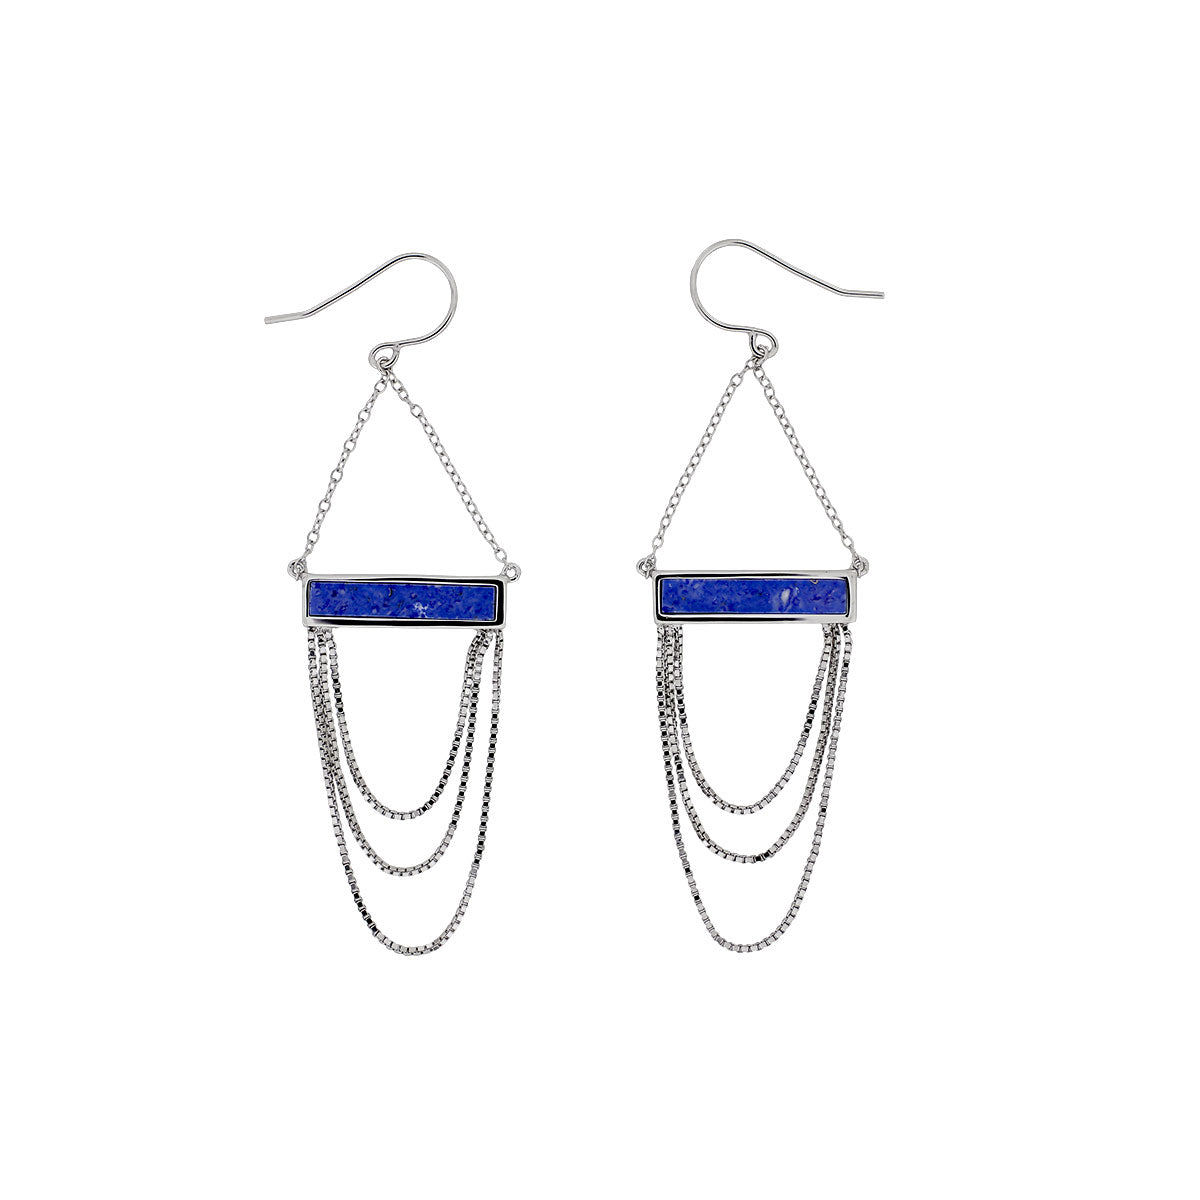 Horizon Chains Earrings in Blue Howlite